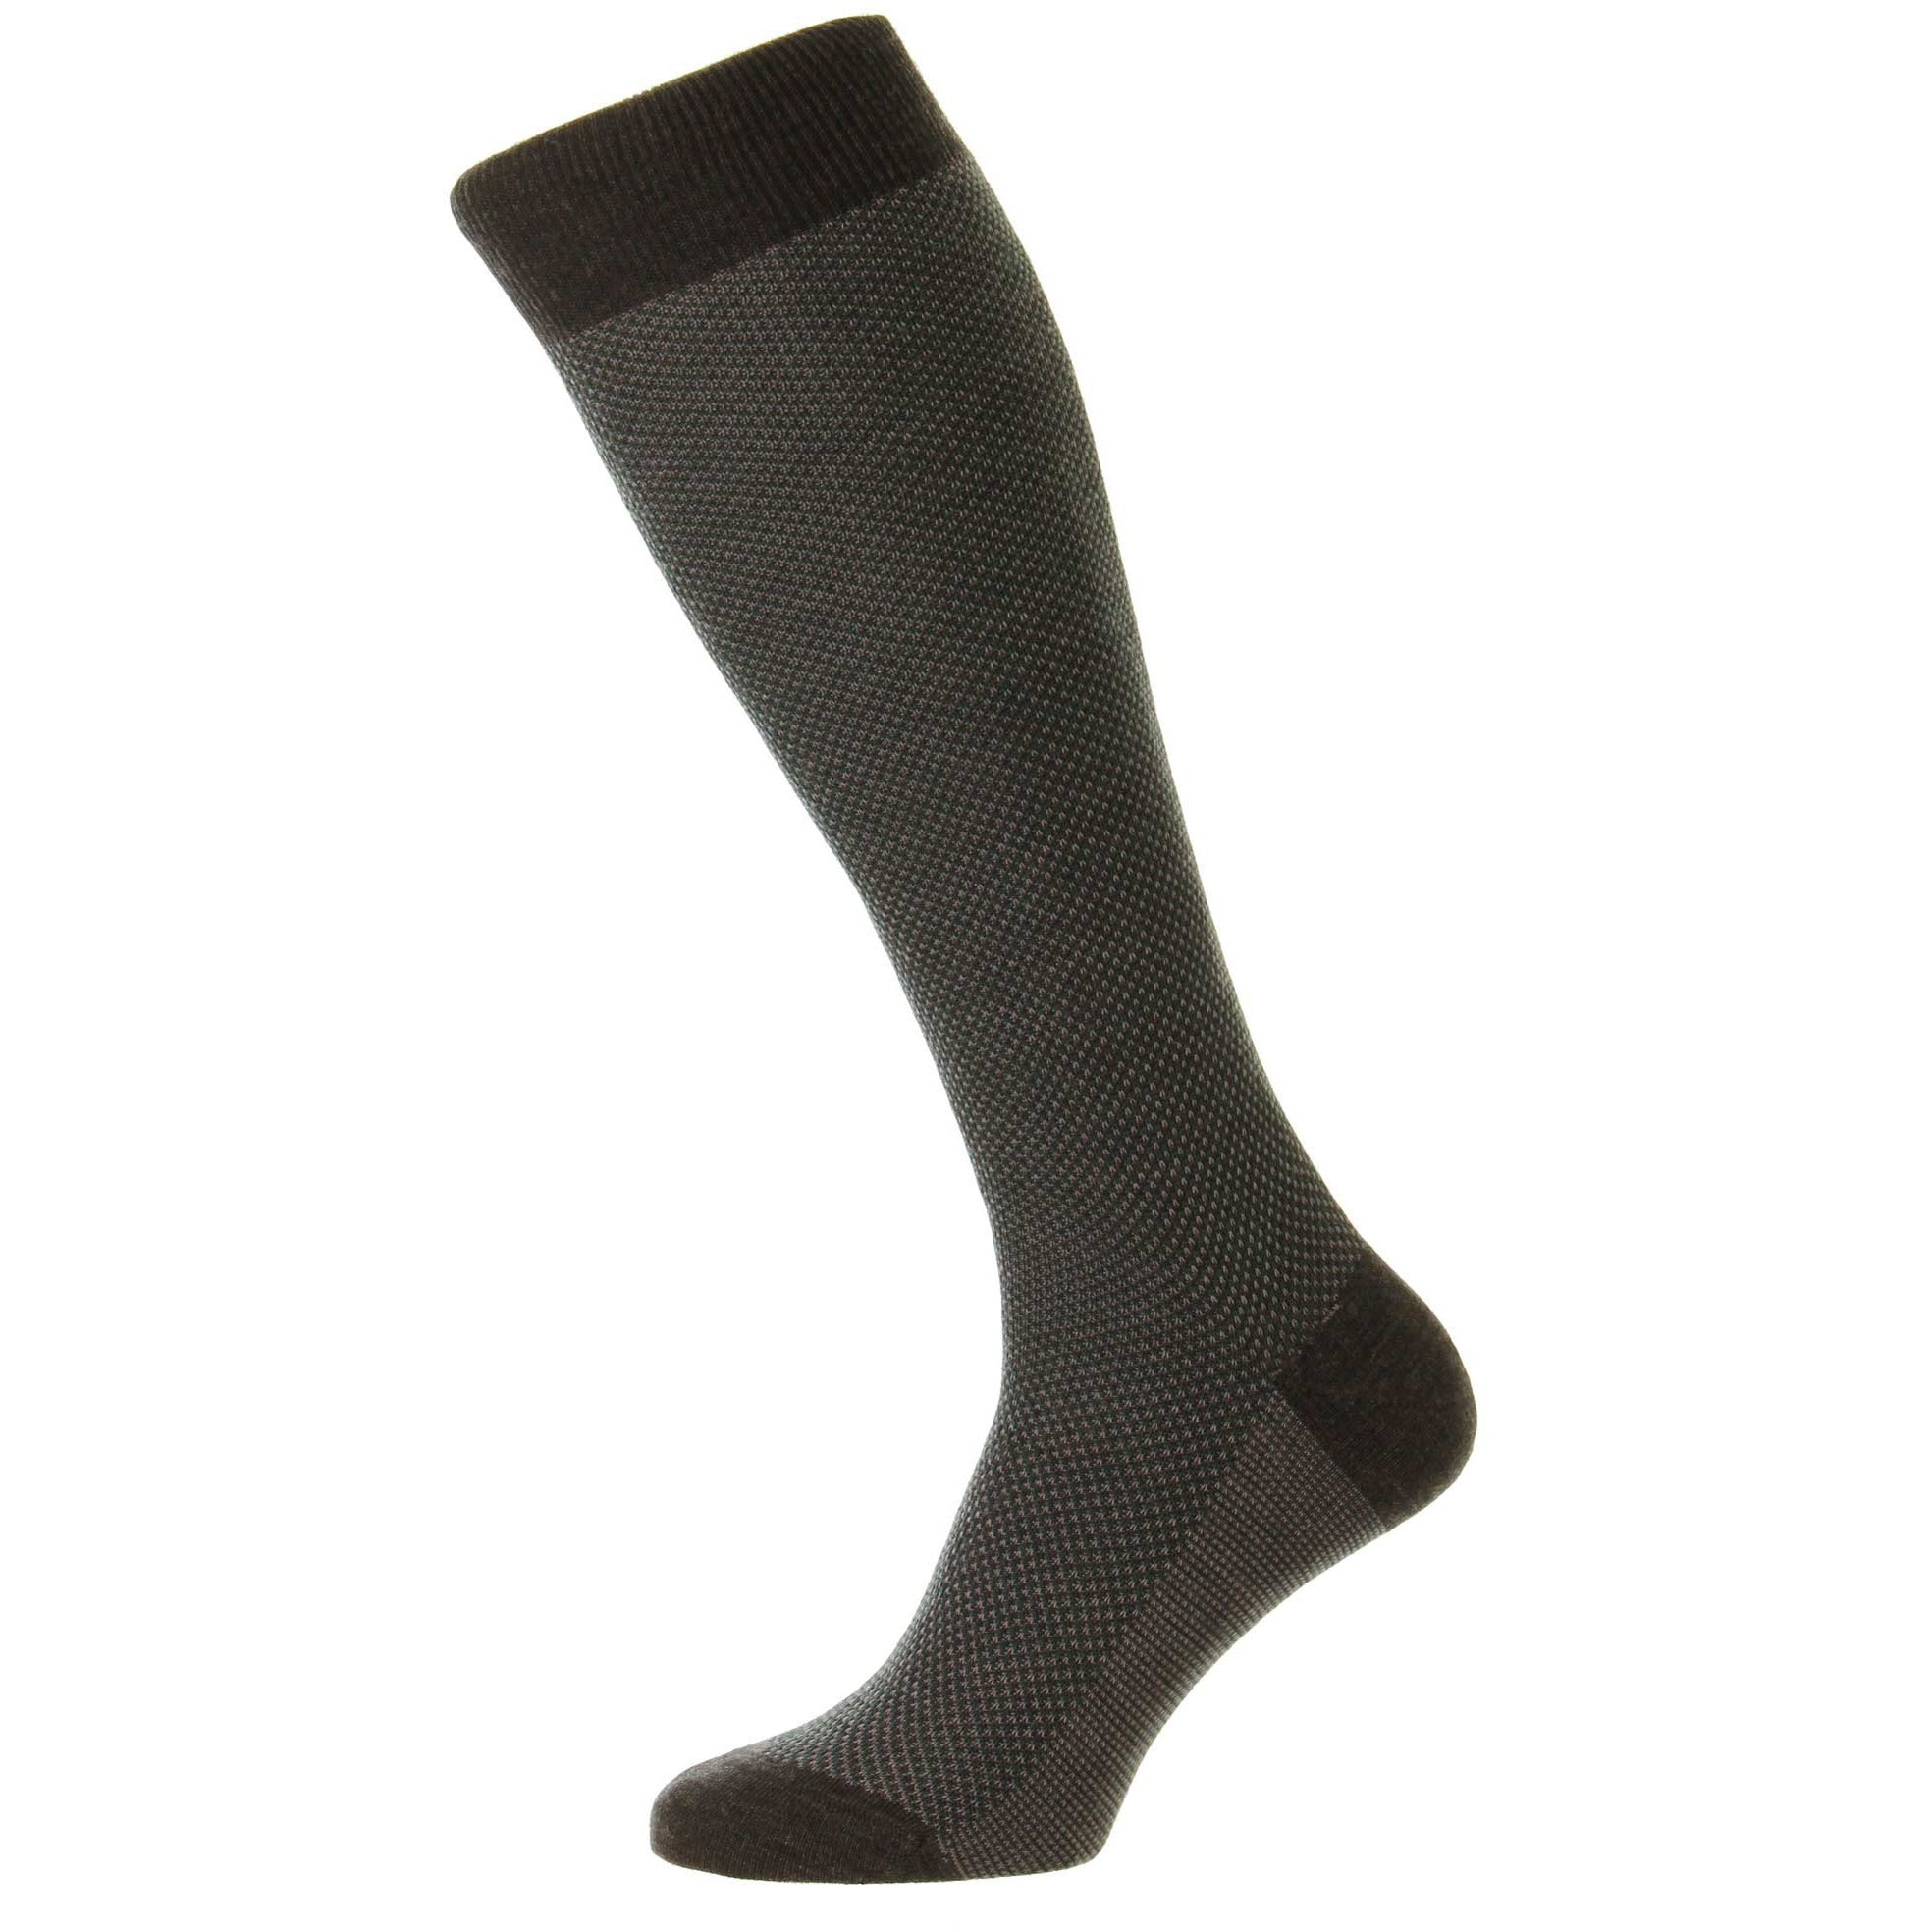 Blenheim 3 Color Birdseye Merino Wool Over the Calf Socks